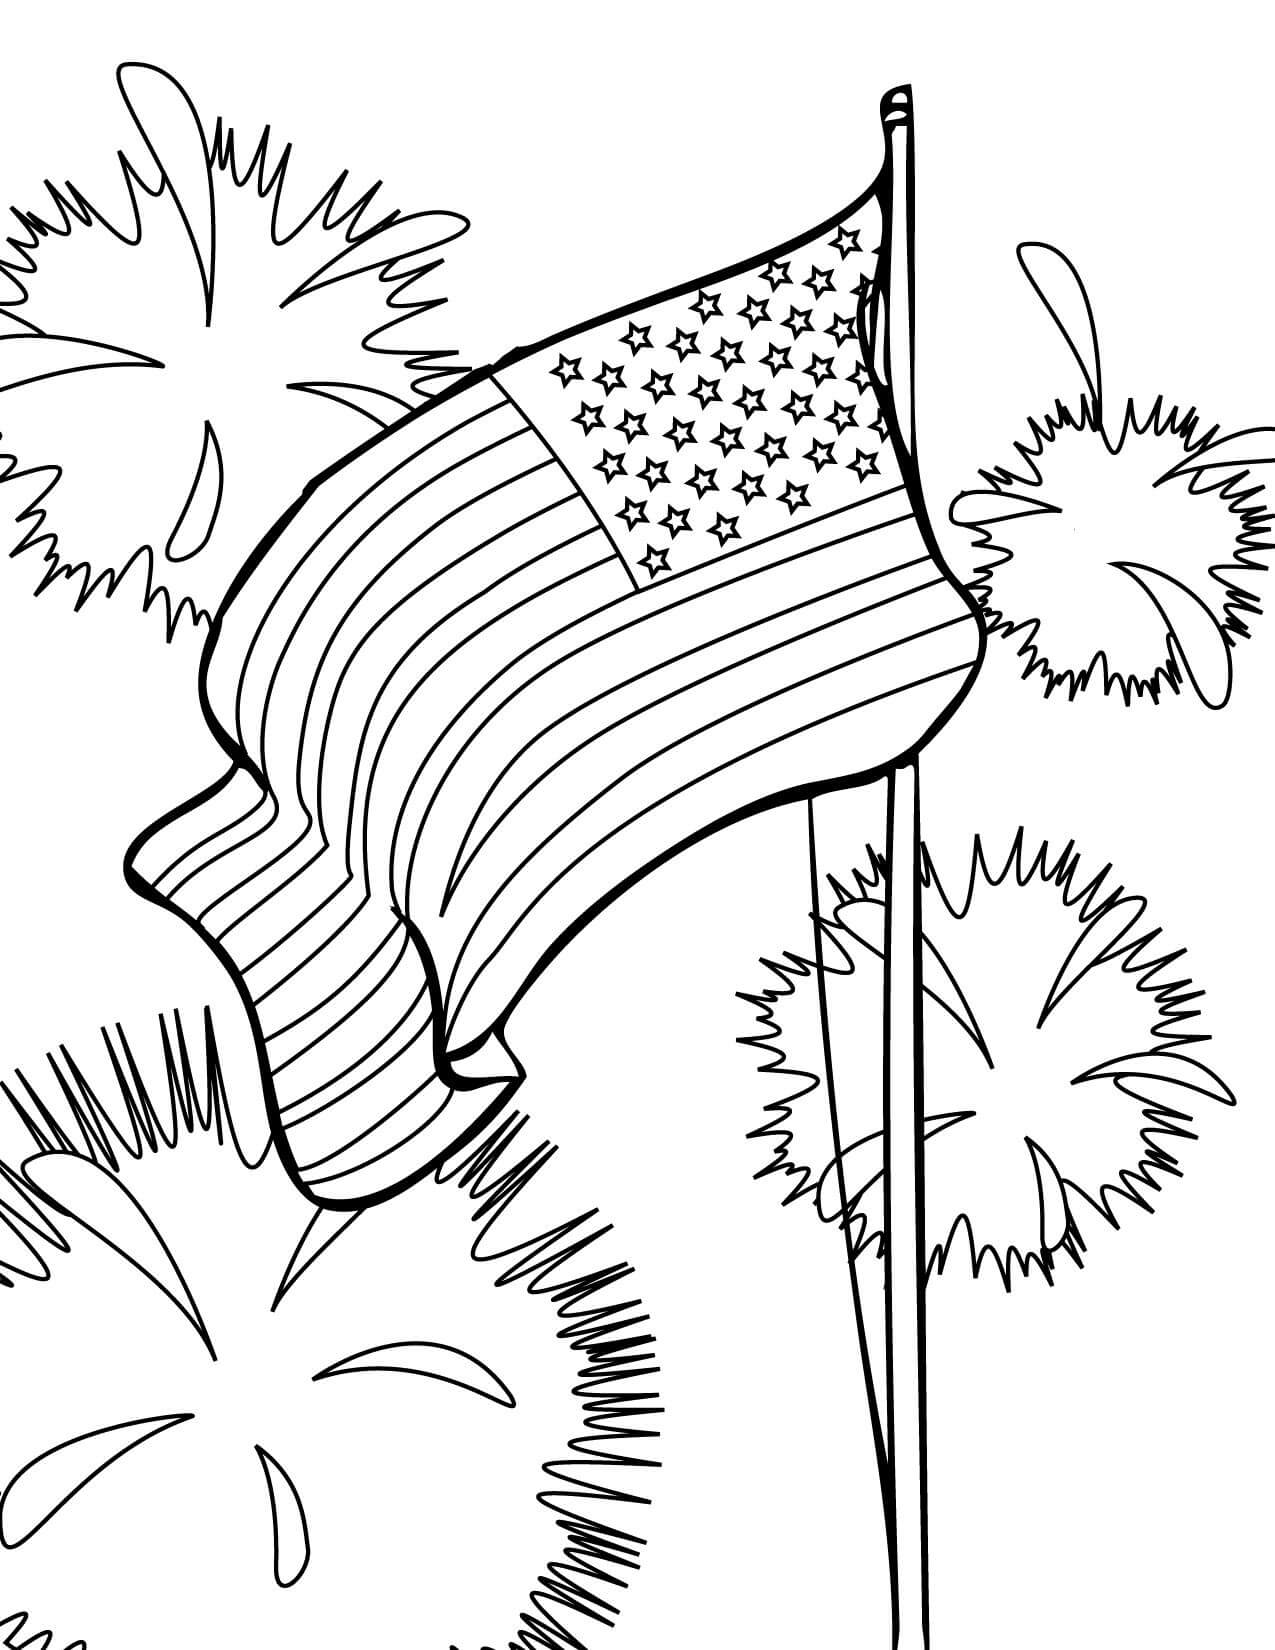 Memorial Day Coloring Images